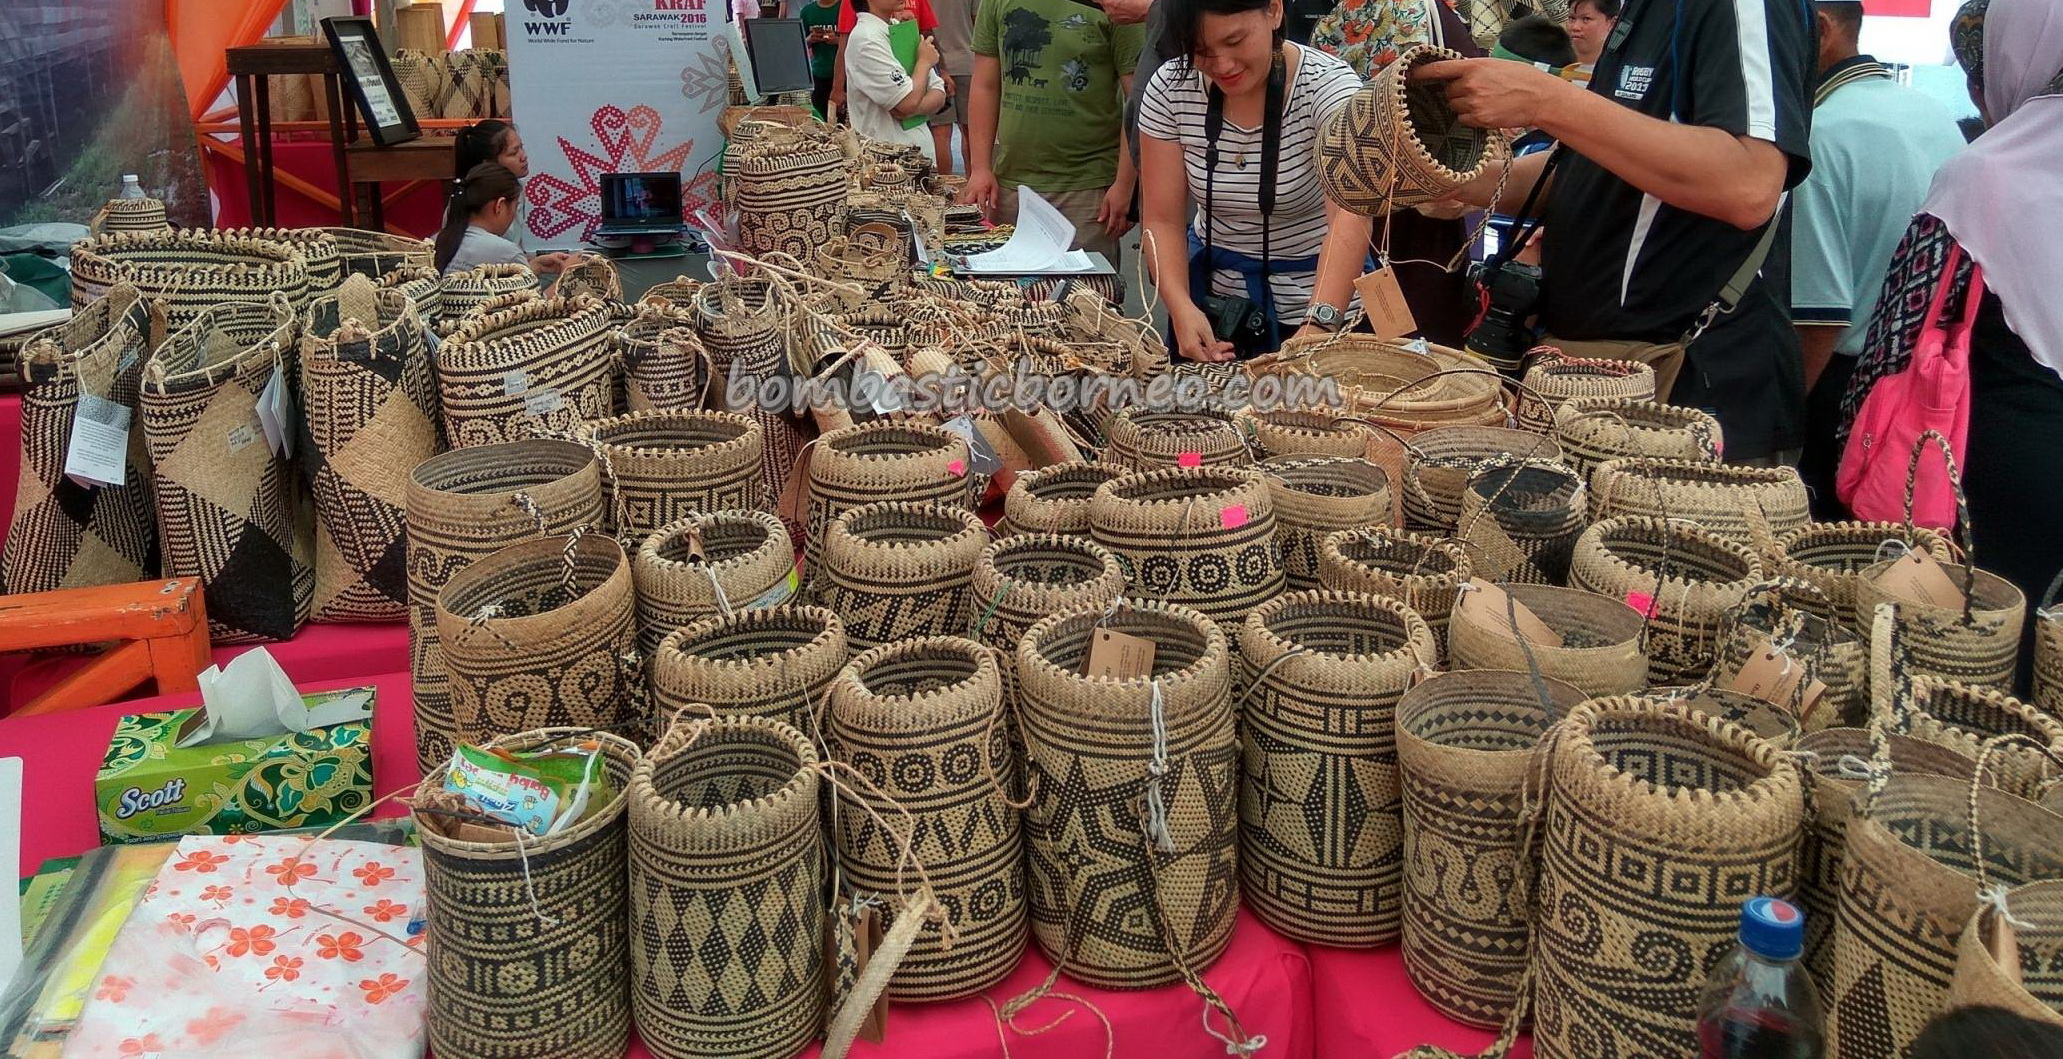 Indigenous, aboriginal, crafts festival, handicrafts, Kraftangan, culture, dayak motif, event, Kuching Waterfront, Malaysia, Borneo, Penan, Rattan Basketry, rotan bags, Tourism, traditional, tribal,